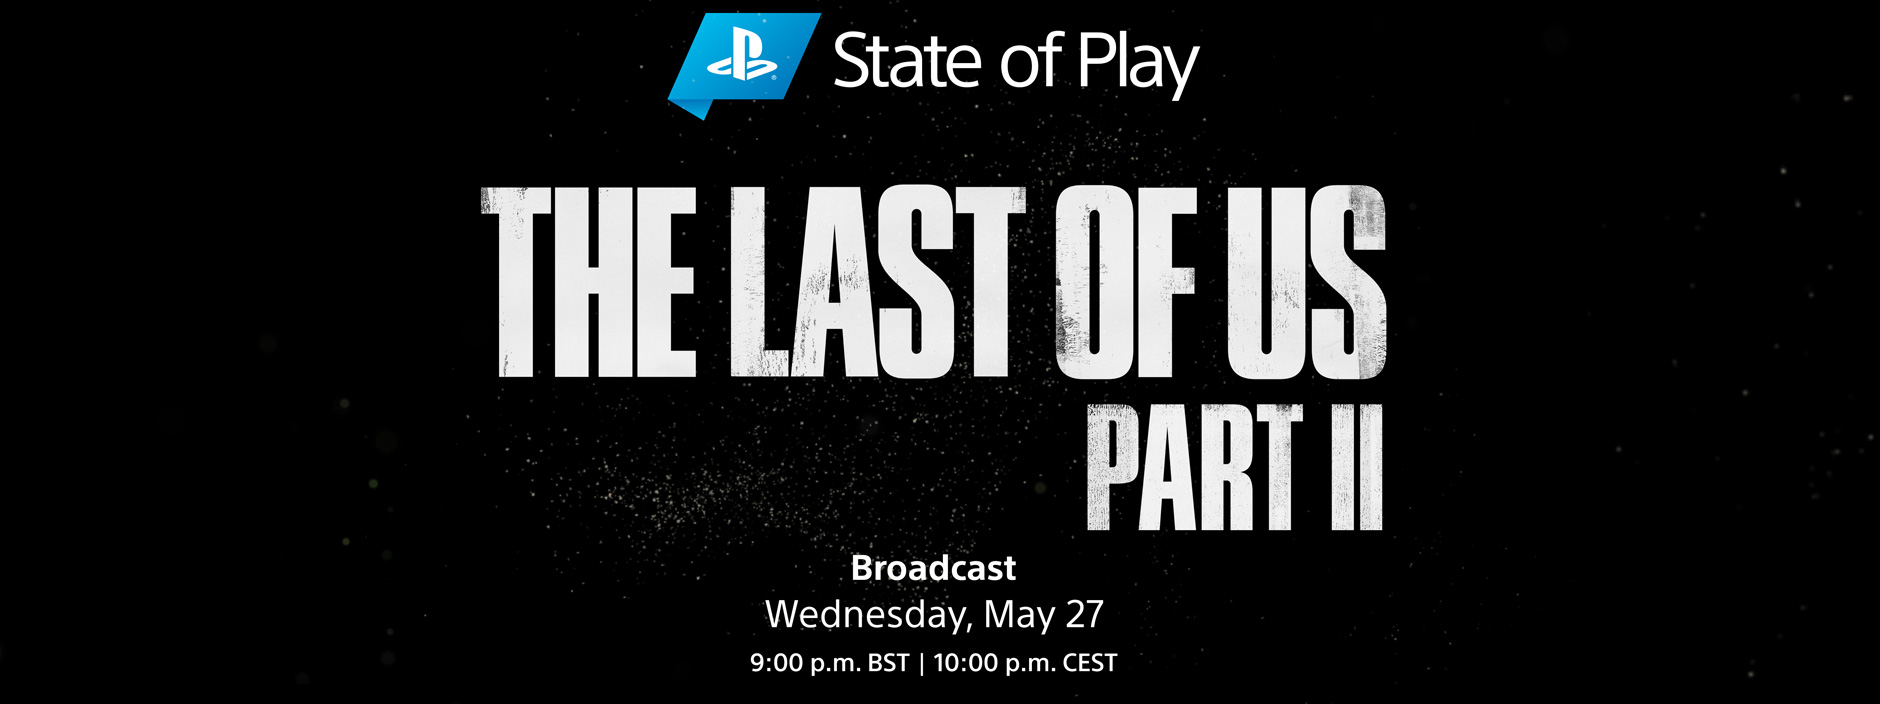 The Last of Us Parte II tendrá su State of Play el miércoles